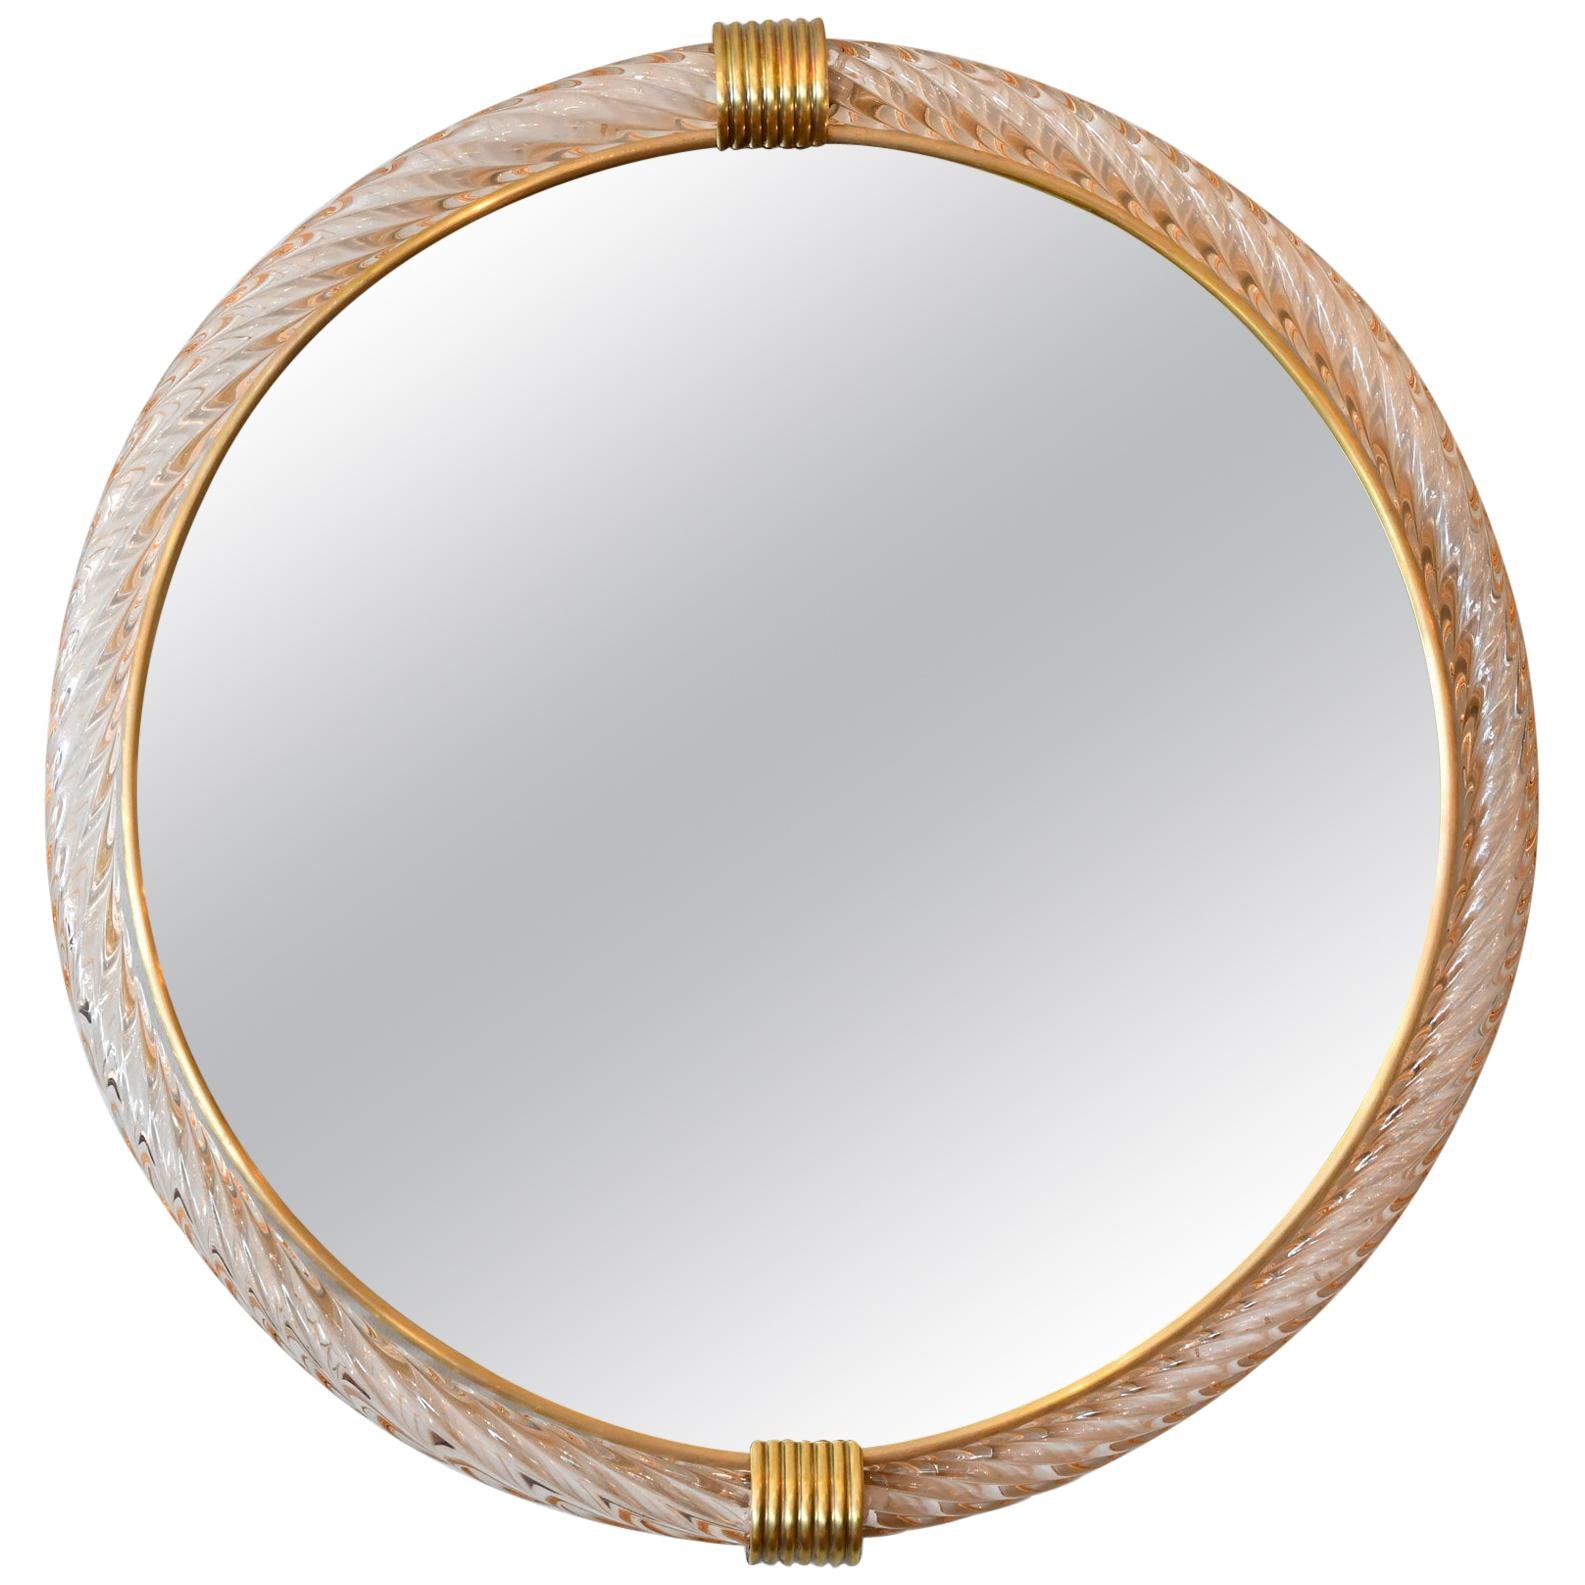 Pink Circular Murano Twisted Rope 'Firenze' Wall Mirror in the Style of Barovier